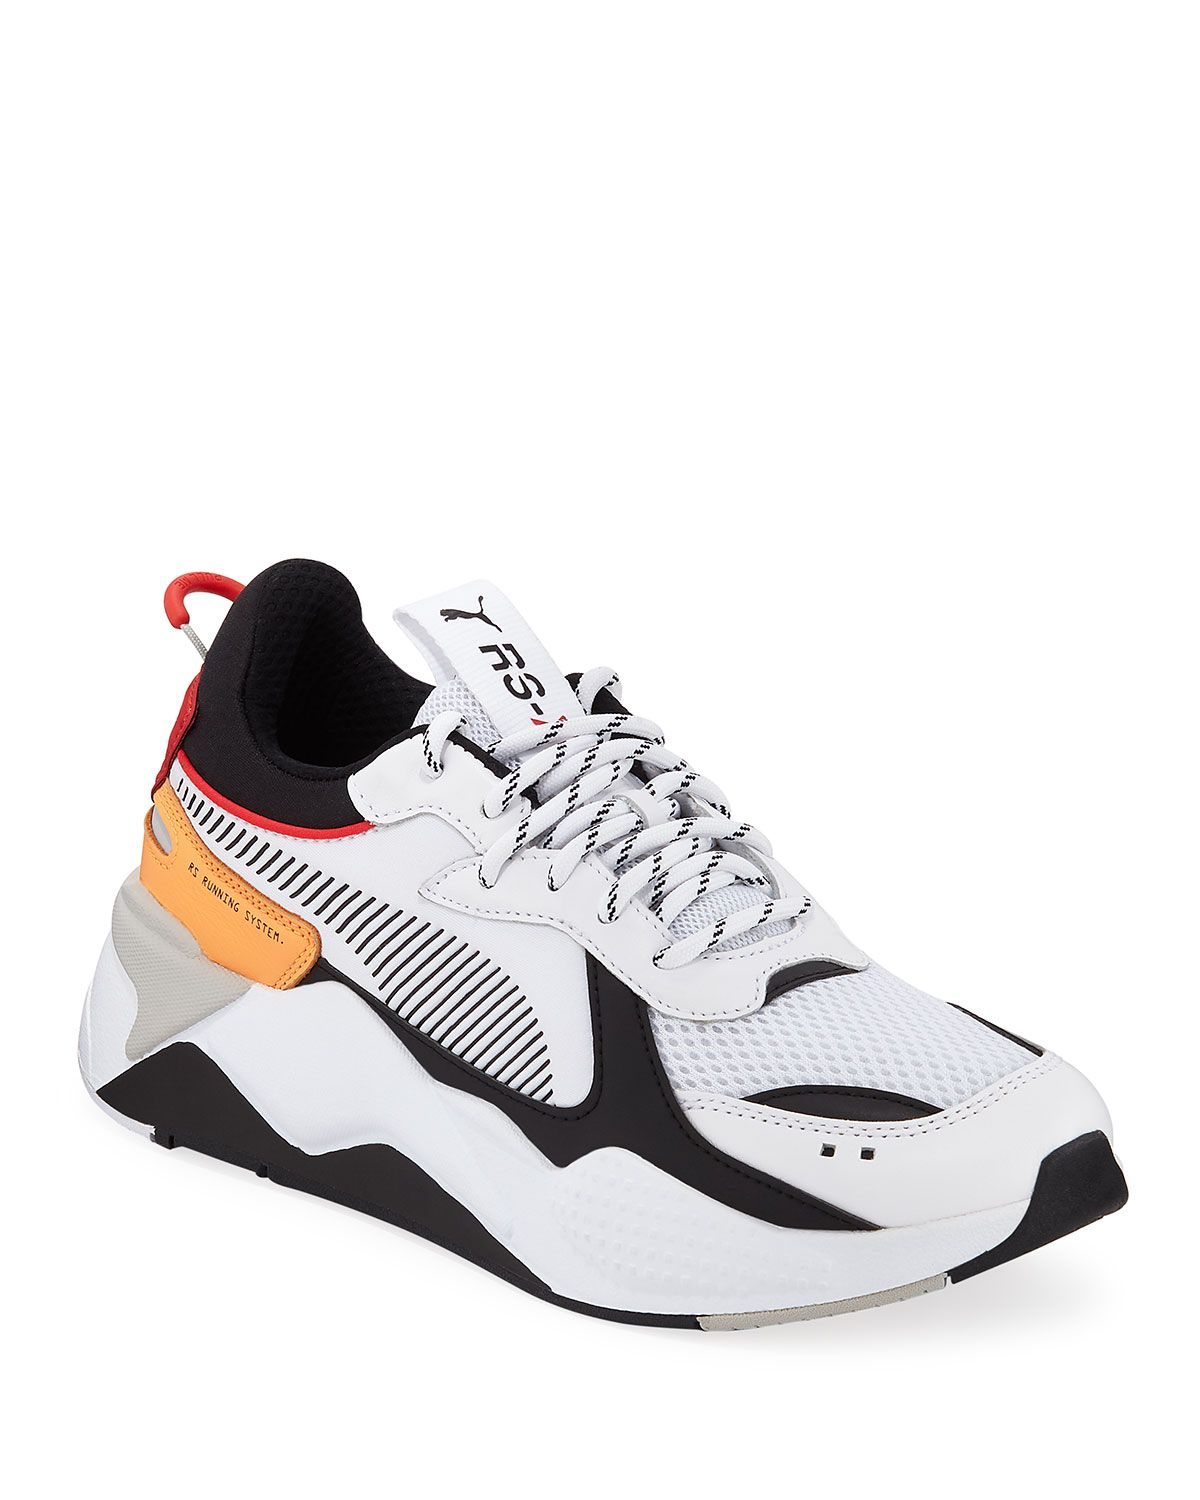 Men's Rs-x Tracks Trainer Sneakers In White | Puma sneakers ...